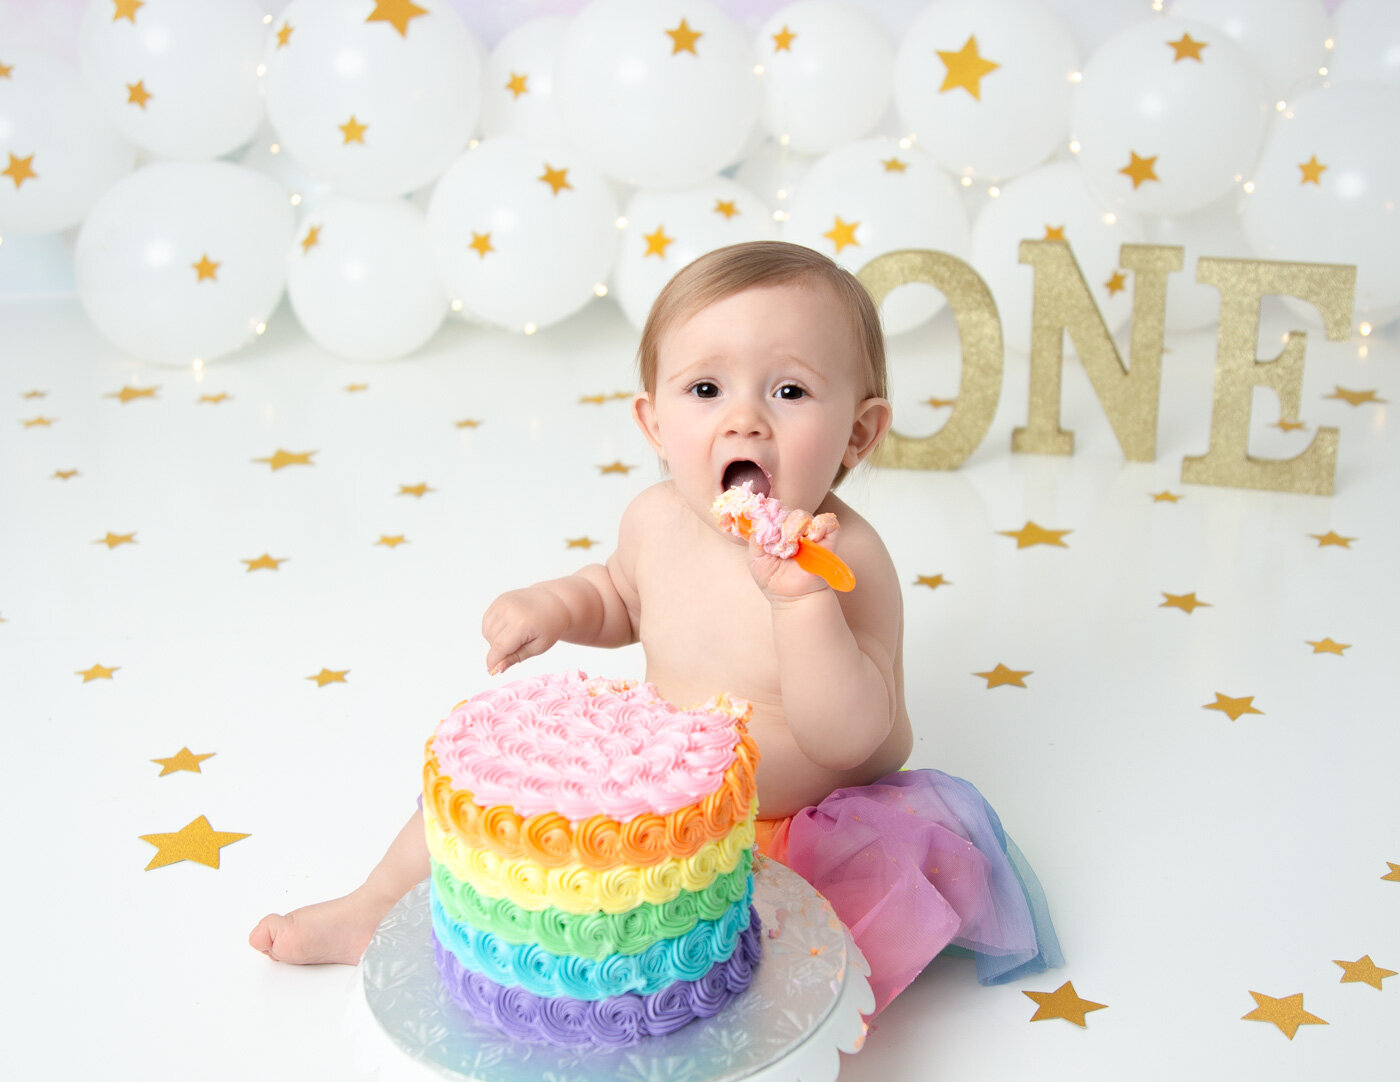 One year old girl cake smash in our Rochester, NY studio.